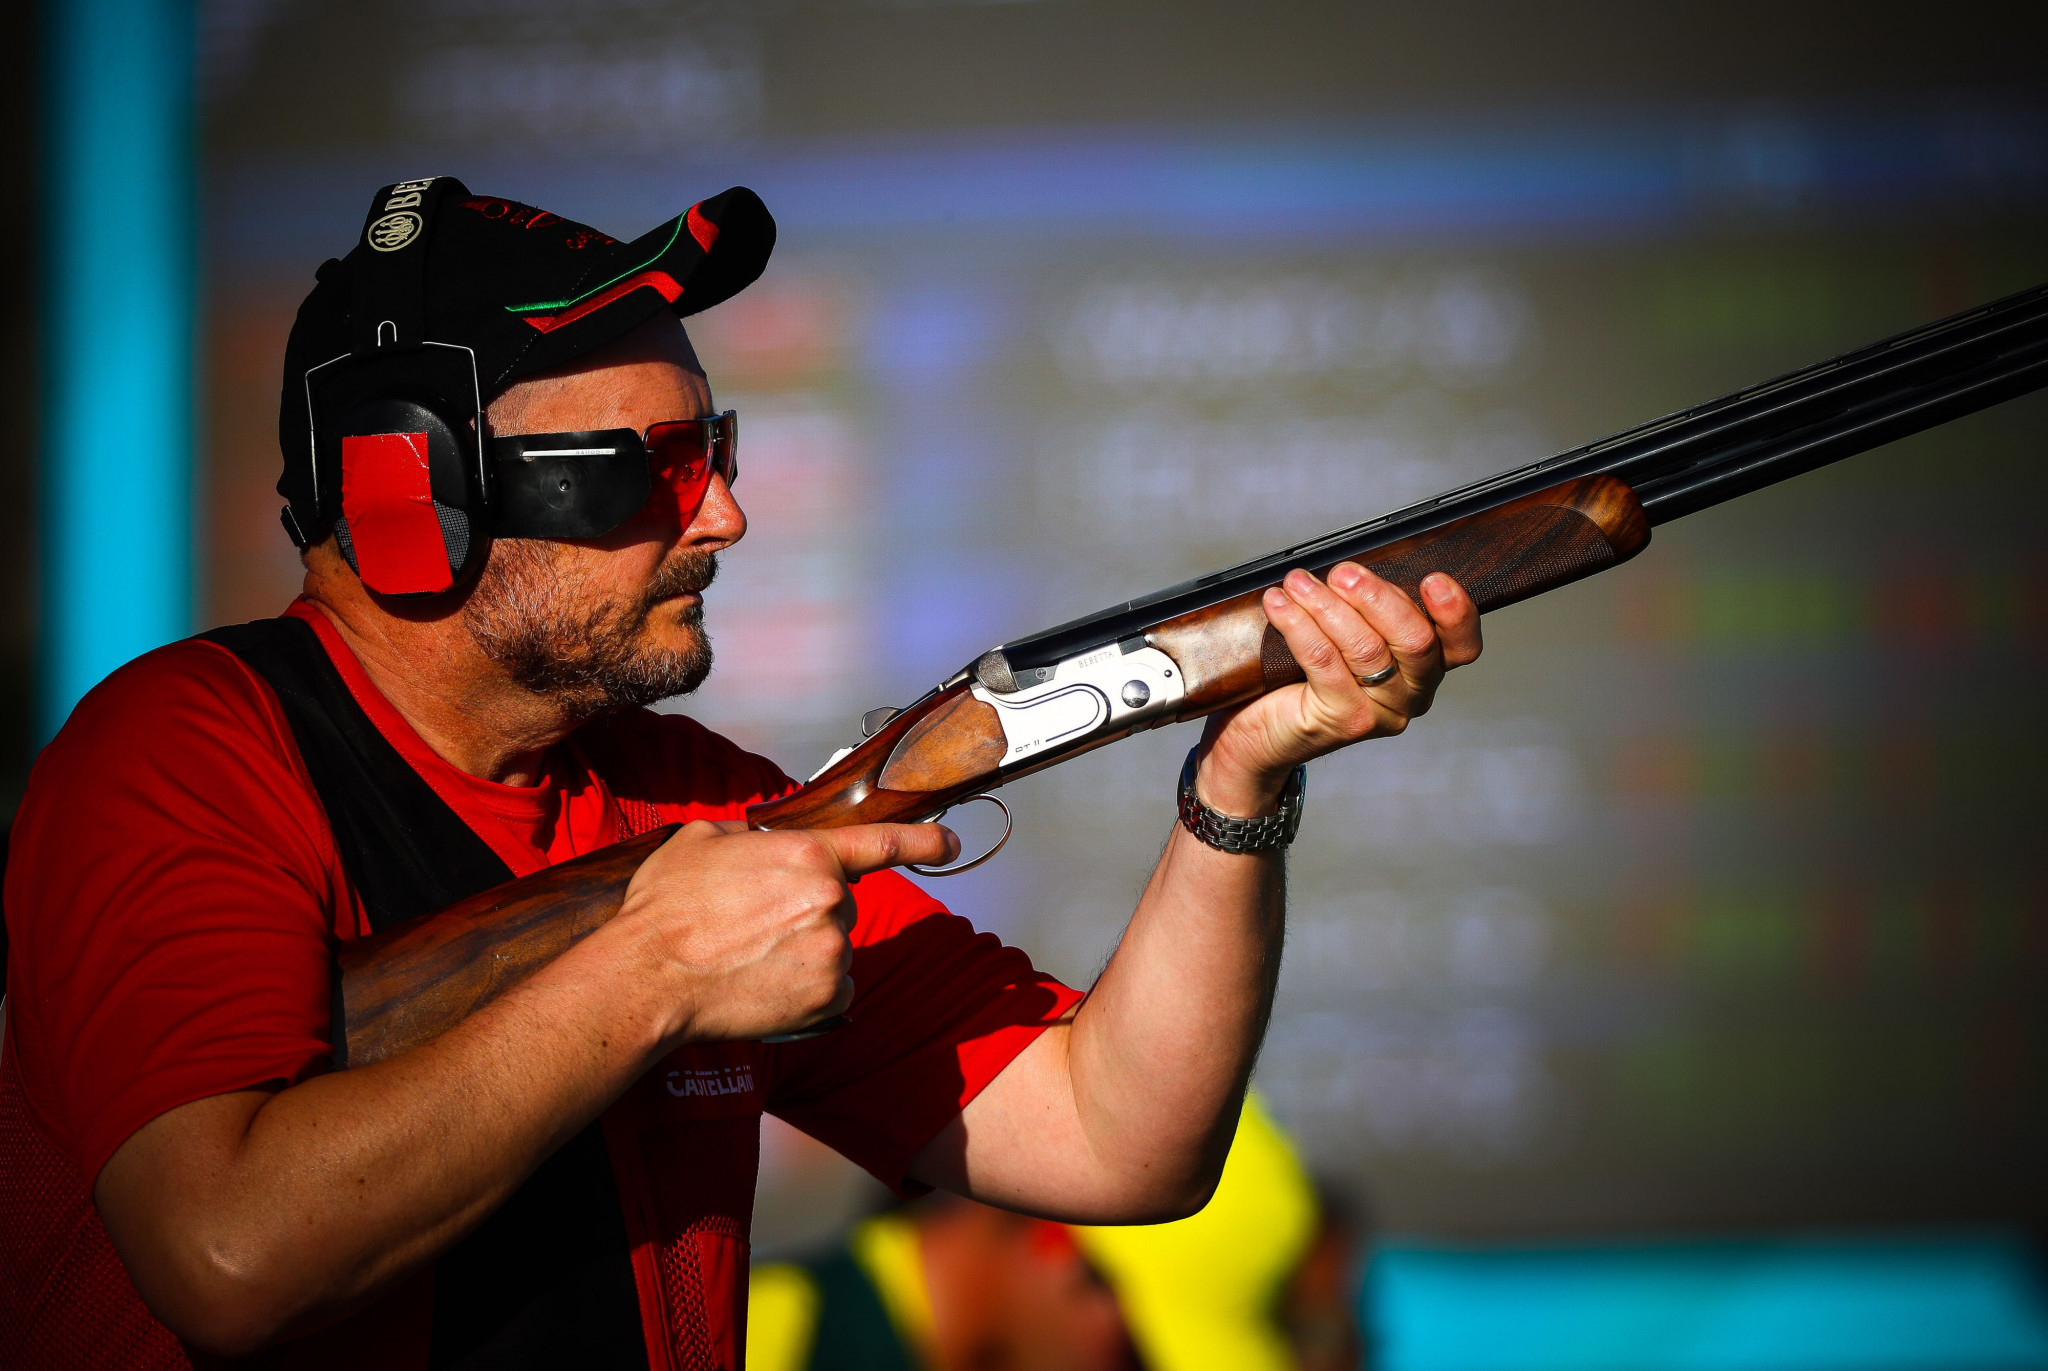 India submit proposal to host shooting and archery medal events at Birmingham 2022